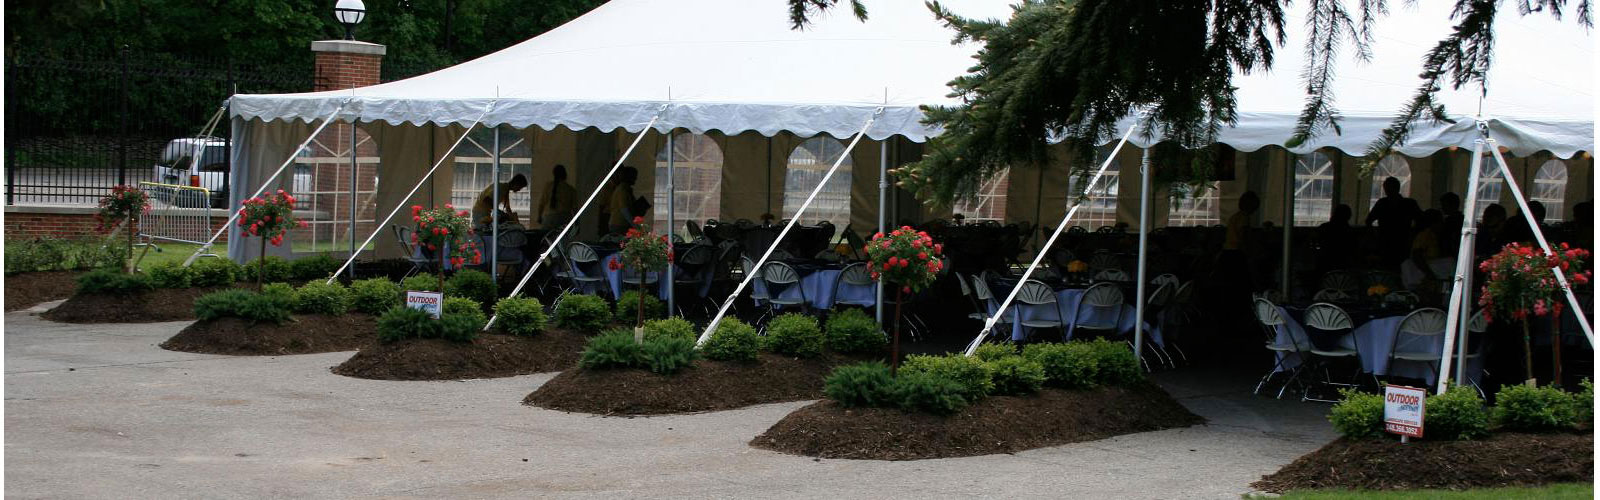 Event rentals in Southeastern and Mid Michigan